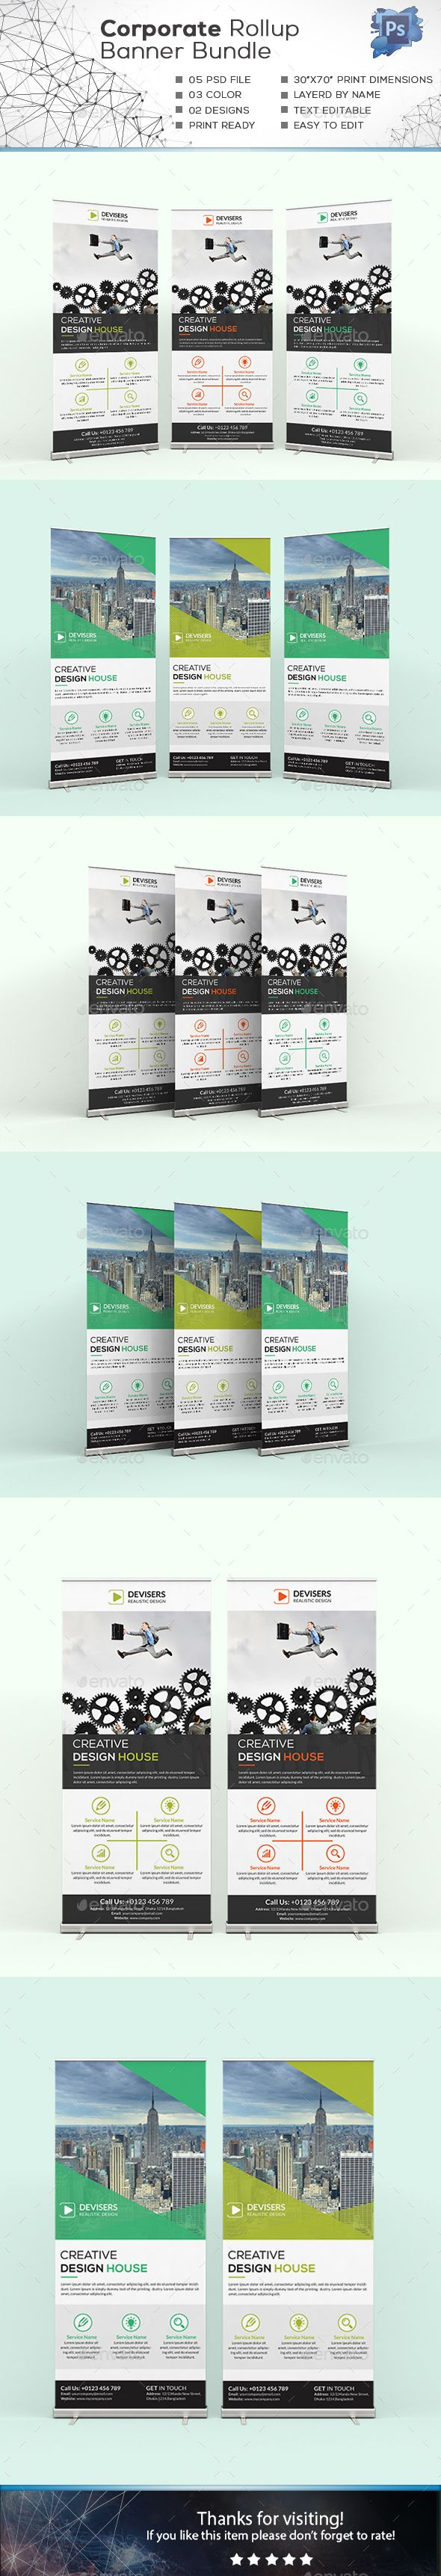 Corporate Roll-up Banner Design Bundle - Signage Print Template PSD. Download he...